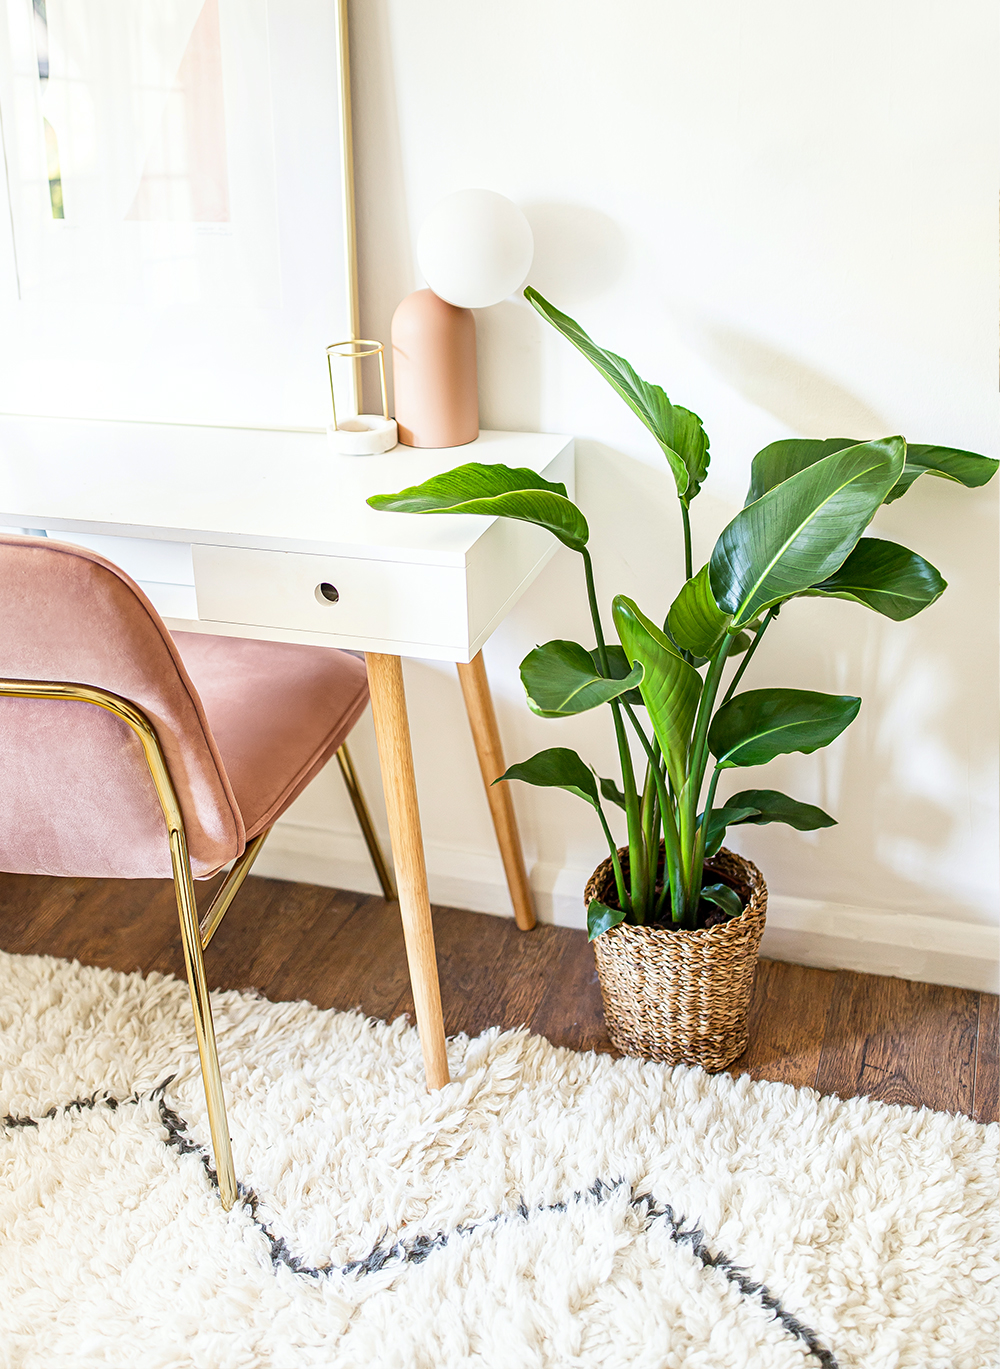 Bird-of-Paradise-Strelitzia-reginae-scandens-kelseyinlondon-homewithkelsey-plant-guide-best-indoor-plants